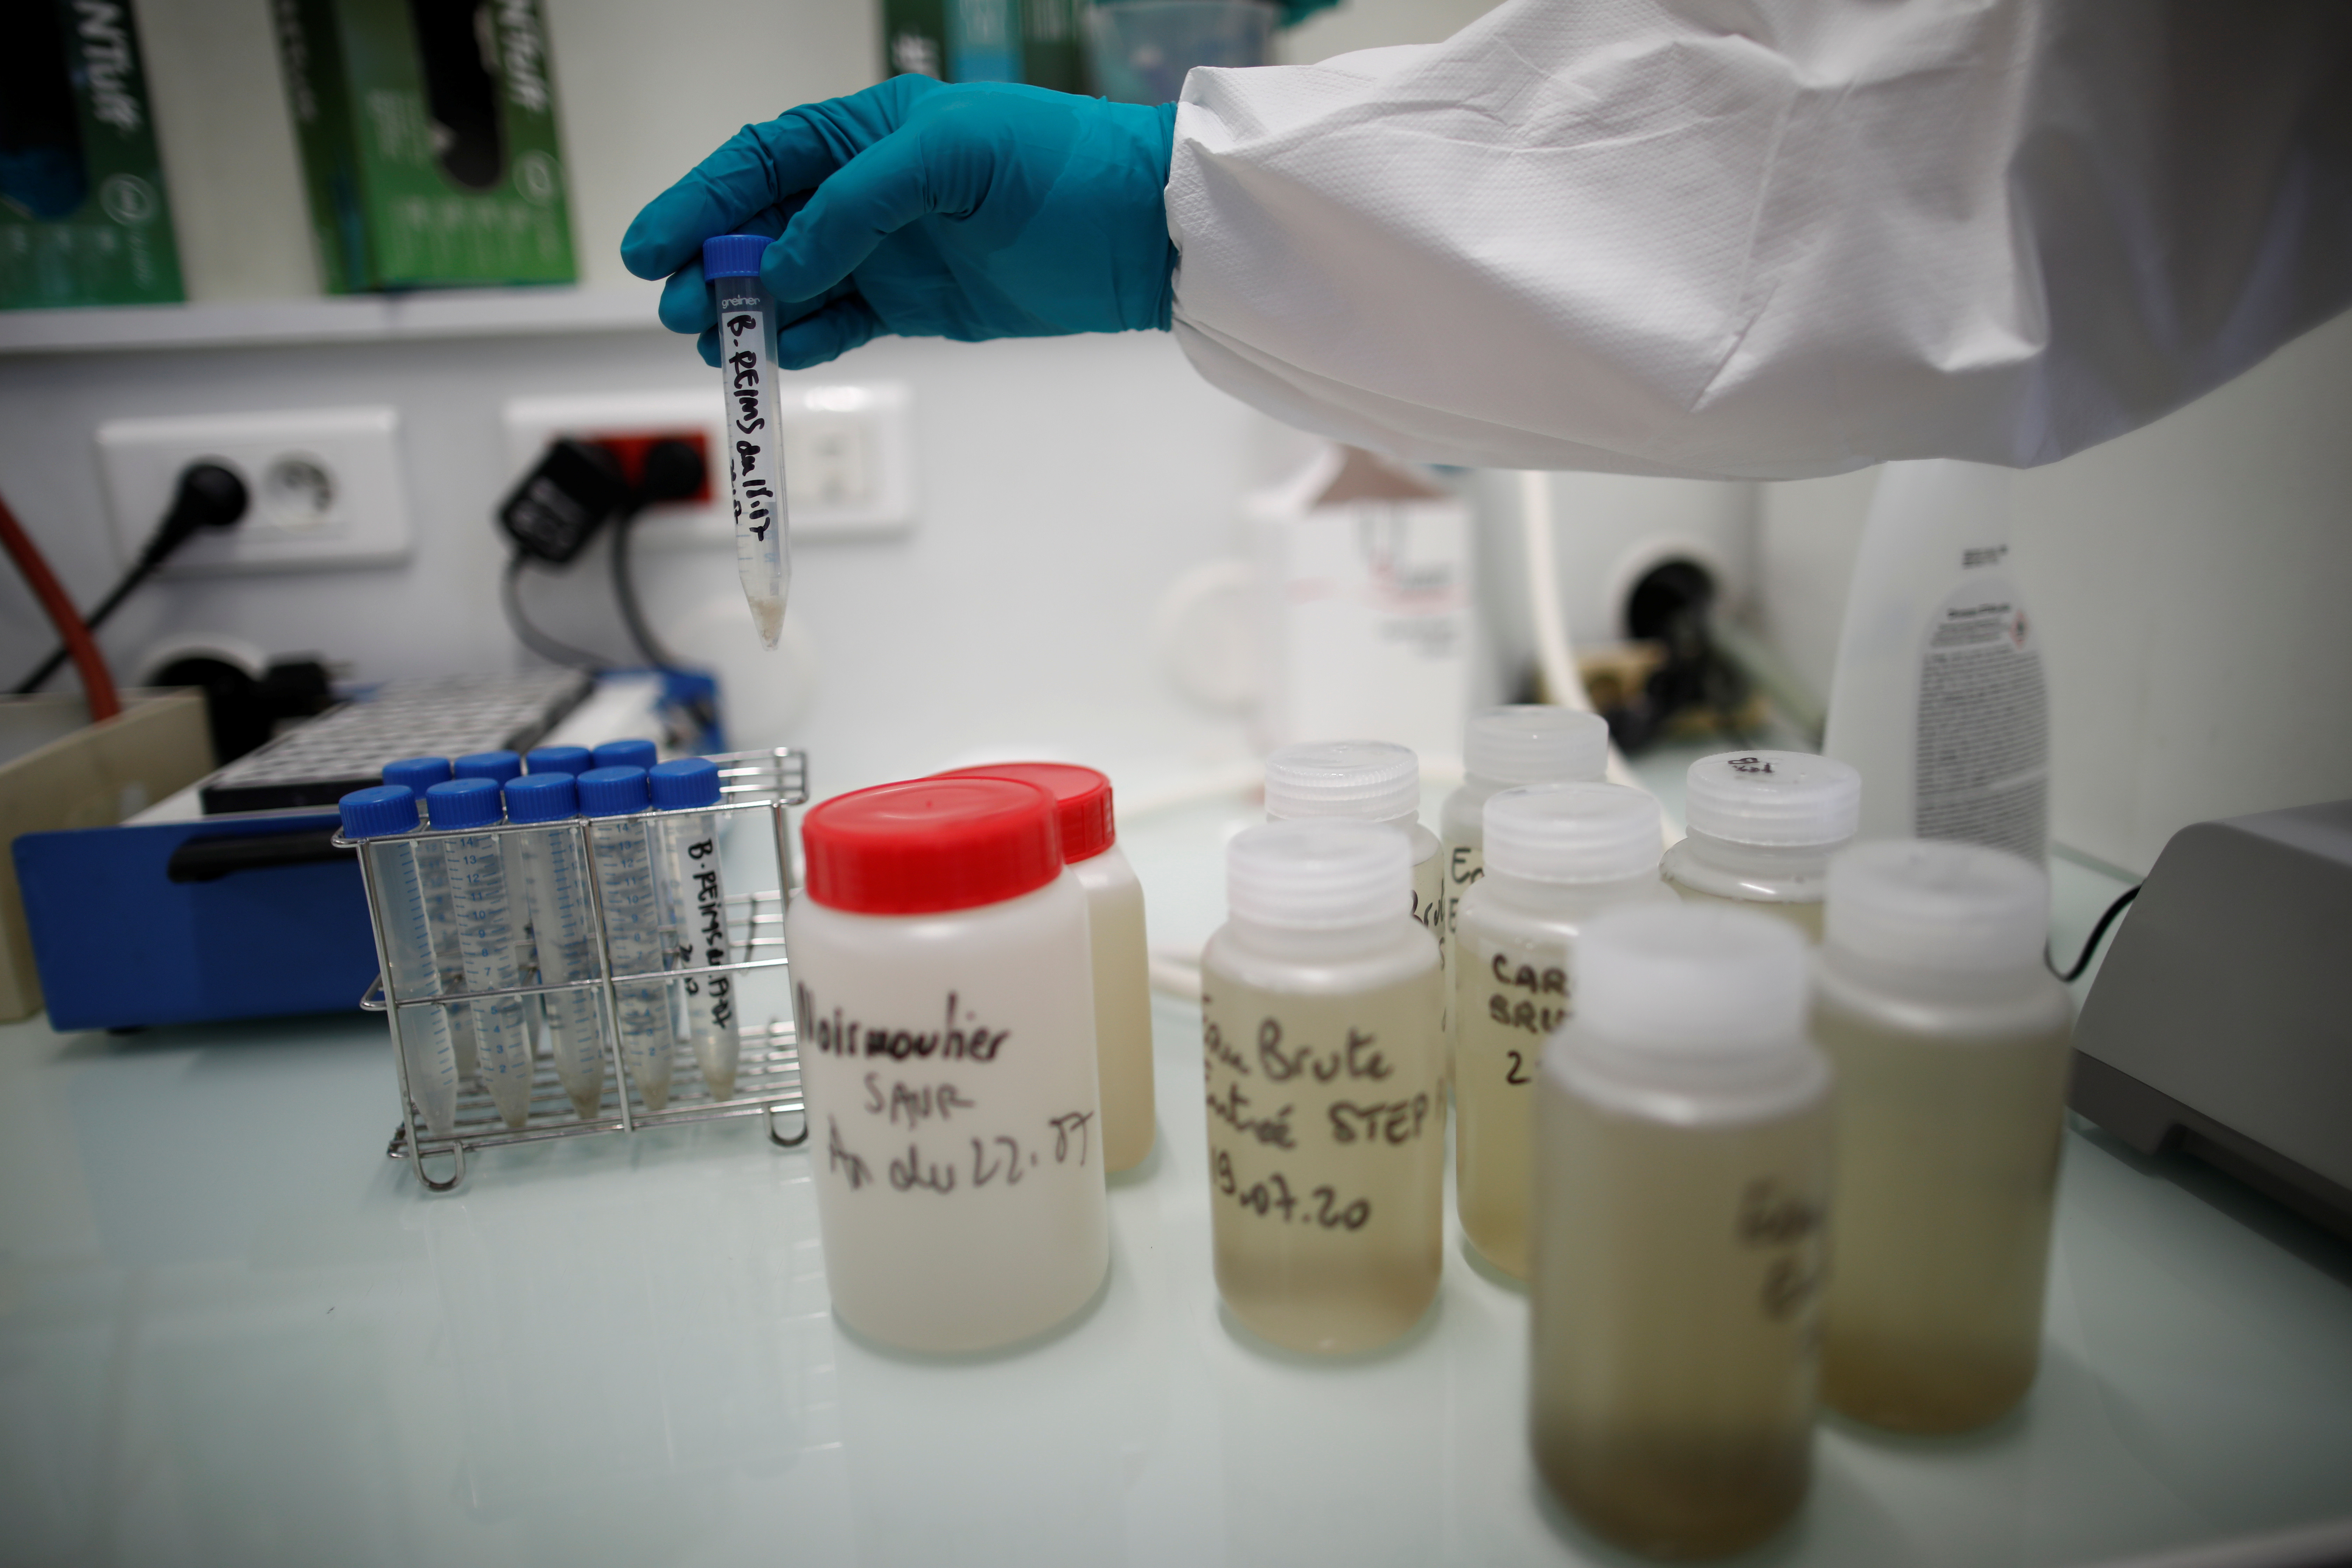 A water quality scientist holds a water sample at the Eau de Paris research and analysis laboratories in Ivry-sur-Seine, near Paris, France, July 22, 2020. Scientists study the Paris waste water to detect the concentration of COVID-19 traces as France remains vigilant against the spread of the coronavirus disease. Picture taken July 22, 2020. REUTERS/Benoit Tessier - RC2ZYH9PJCYY